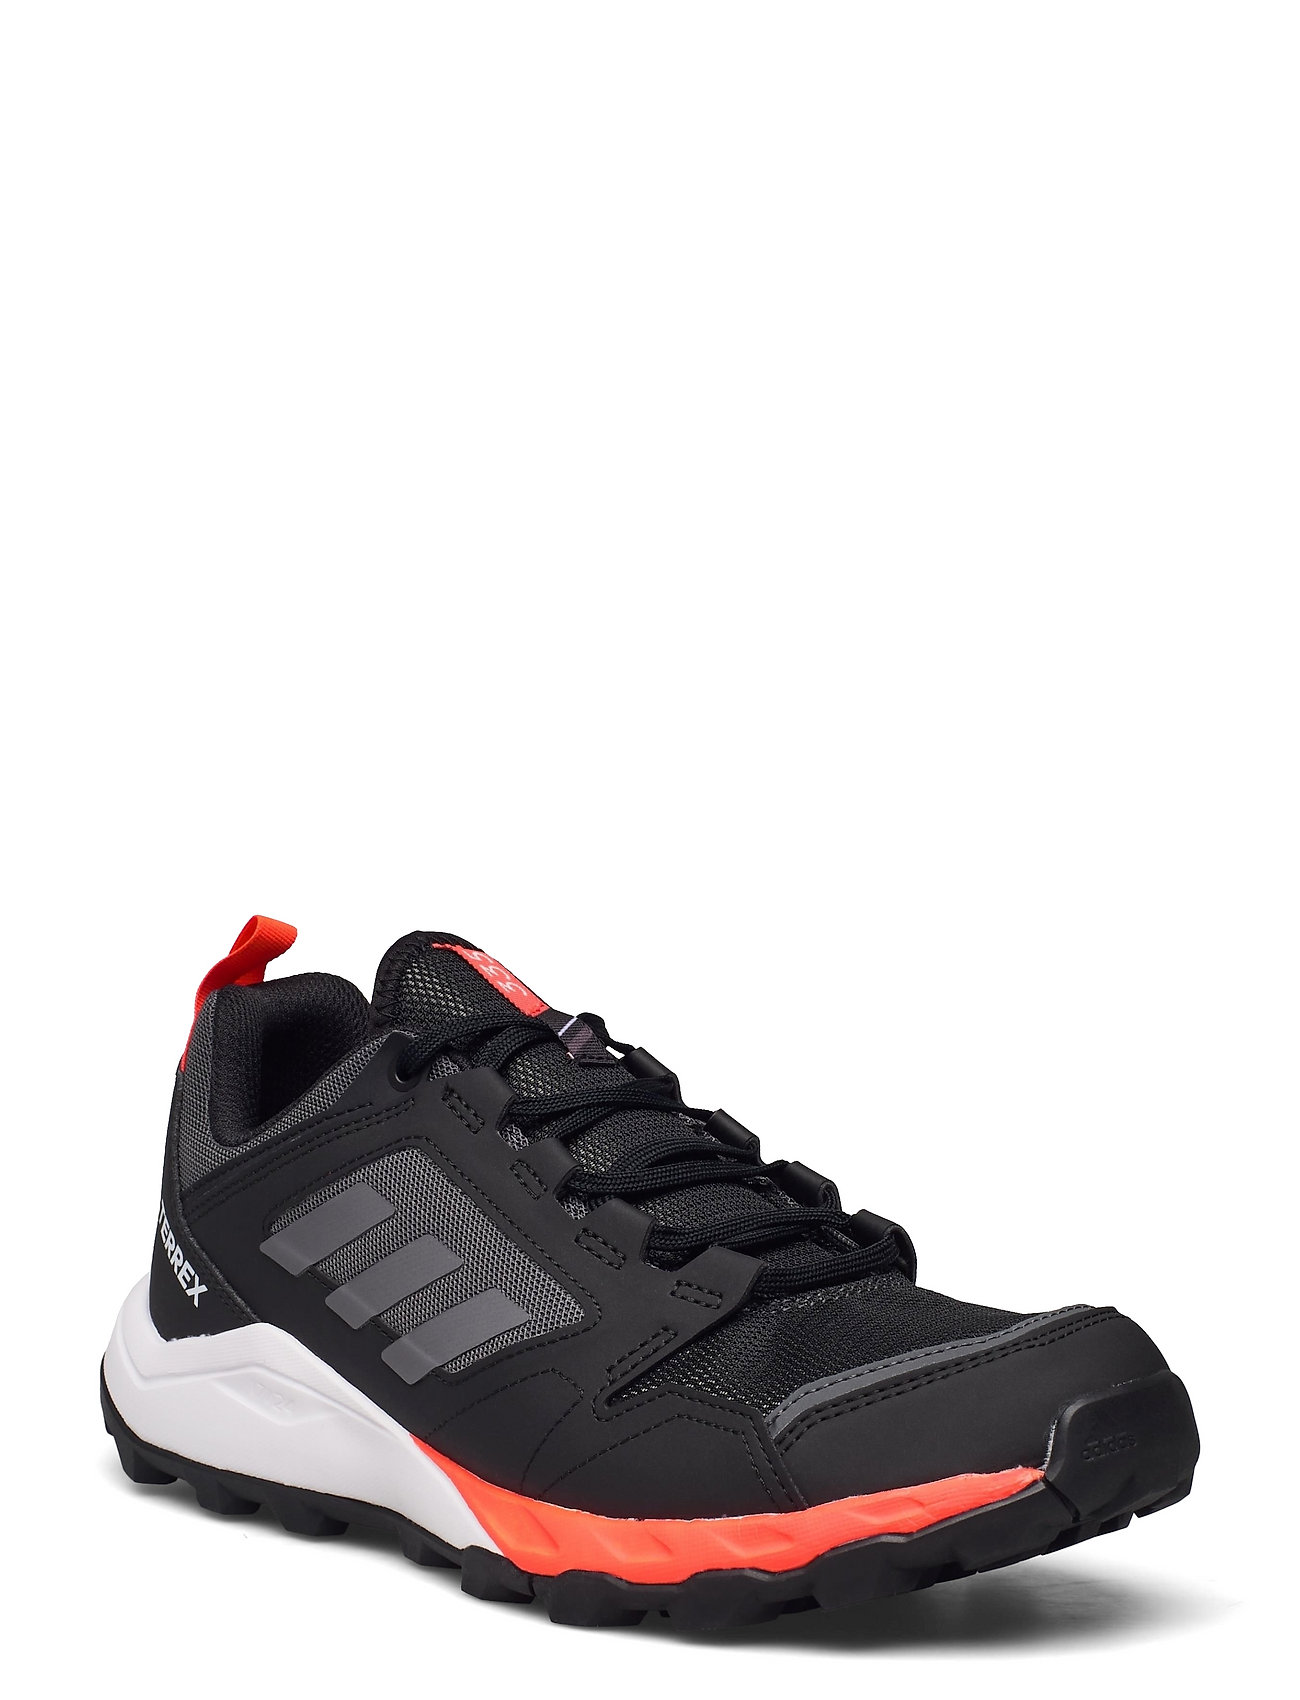 Terrex Agravic Tr Trail Running Shoes Sport Shoes Running Shoes Sort Adidas Performance